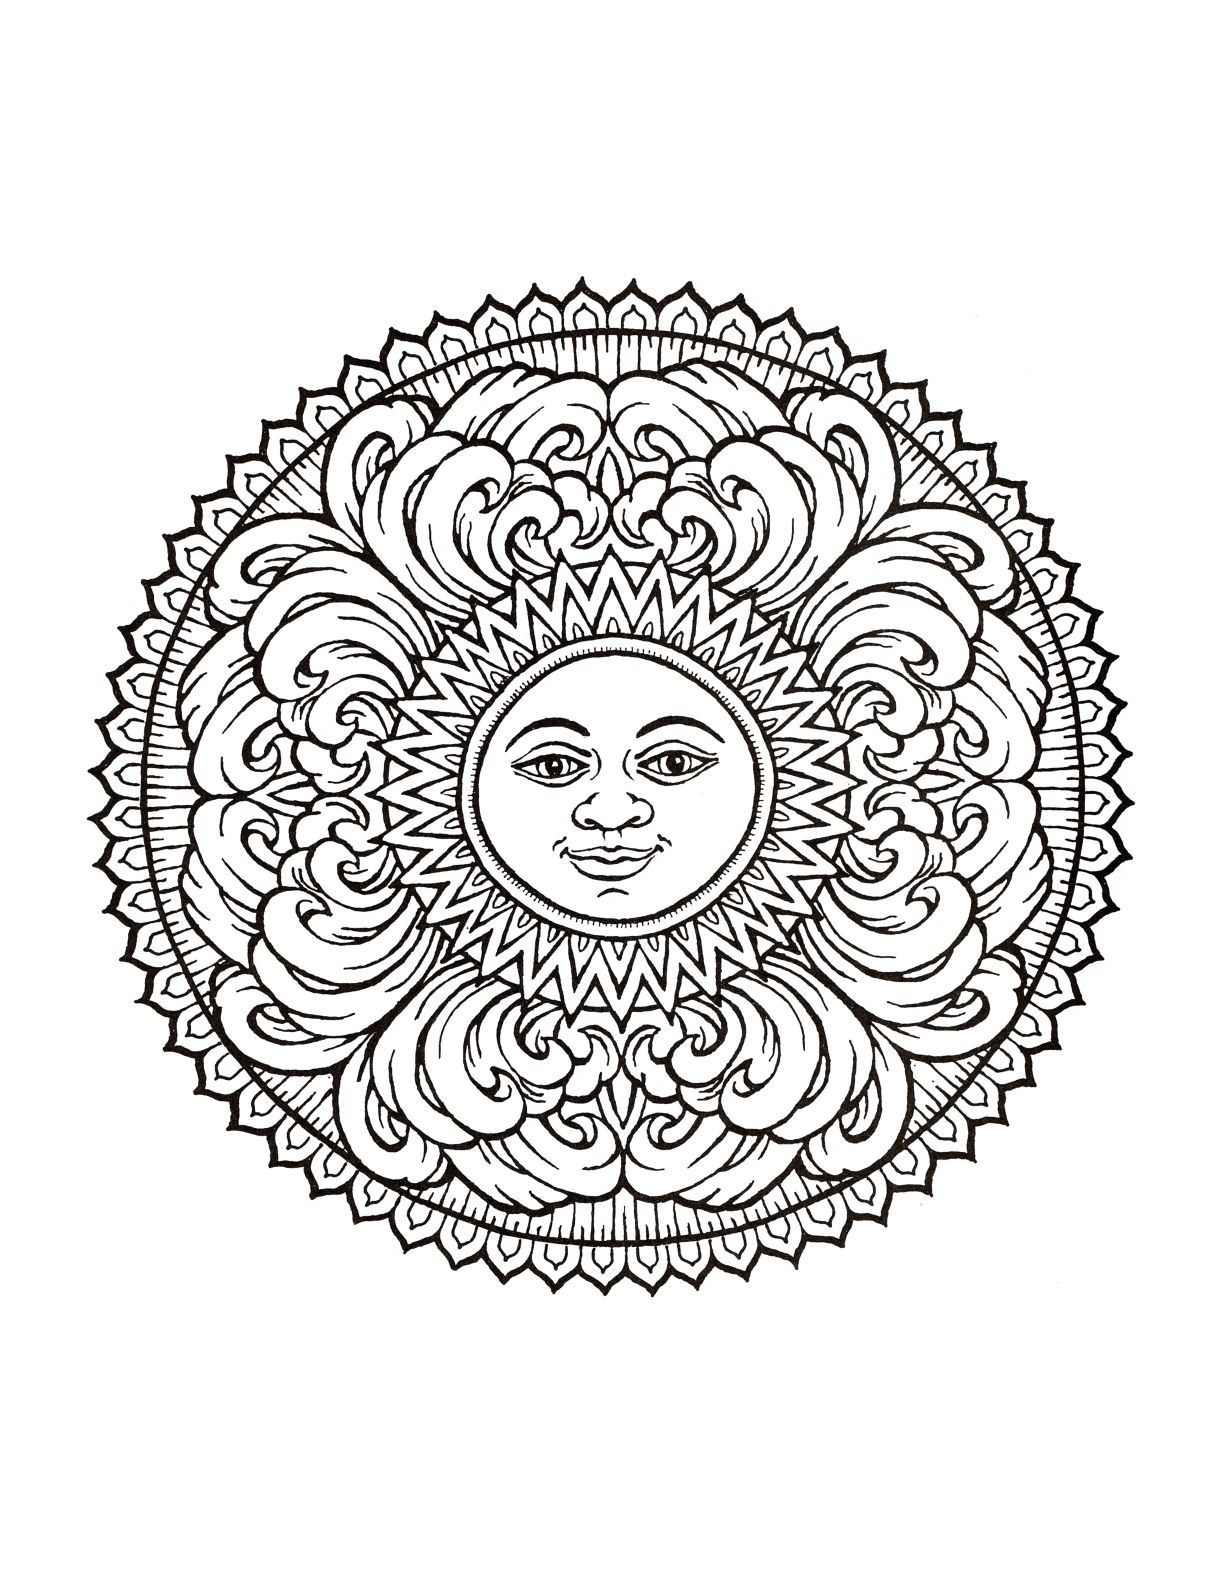 Advanced Coloring Pages for Adults | Coloring Pages Adult